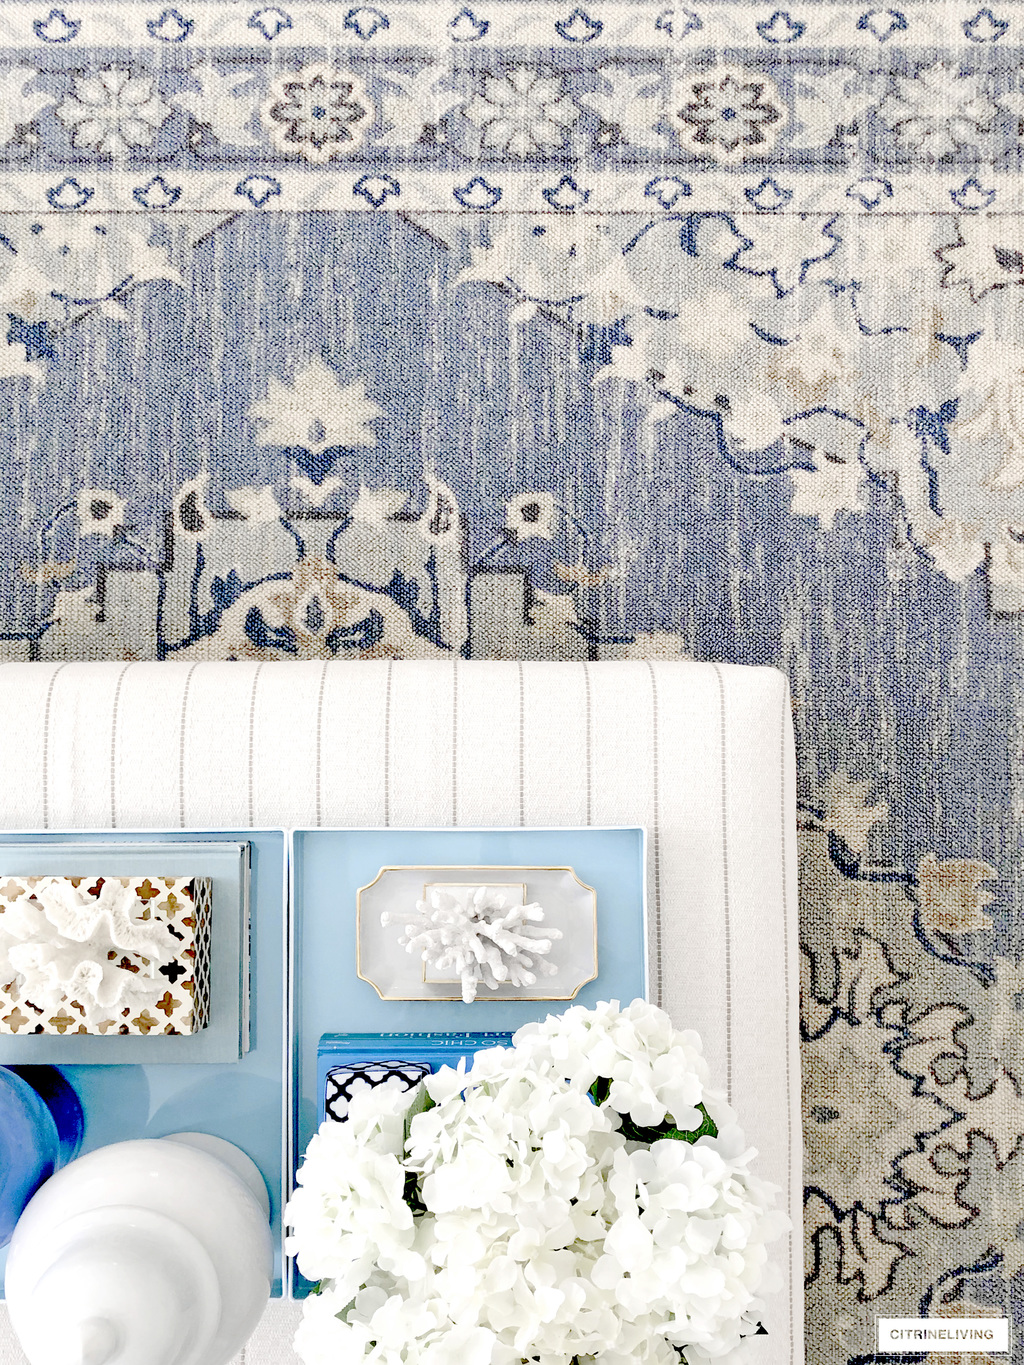 Beautiful living room rug in a soft blue and beige tribal pattern.